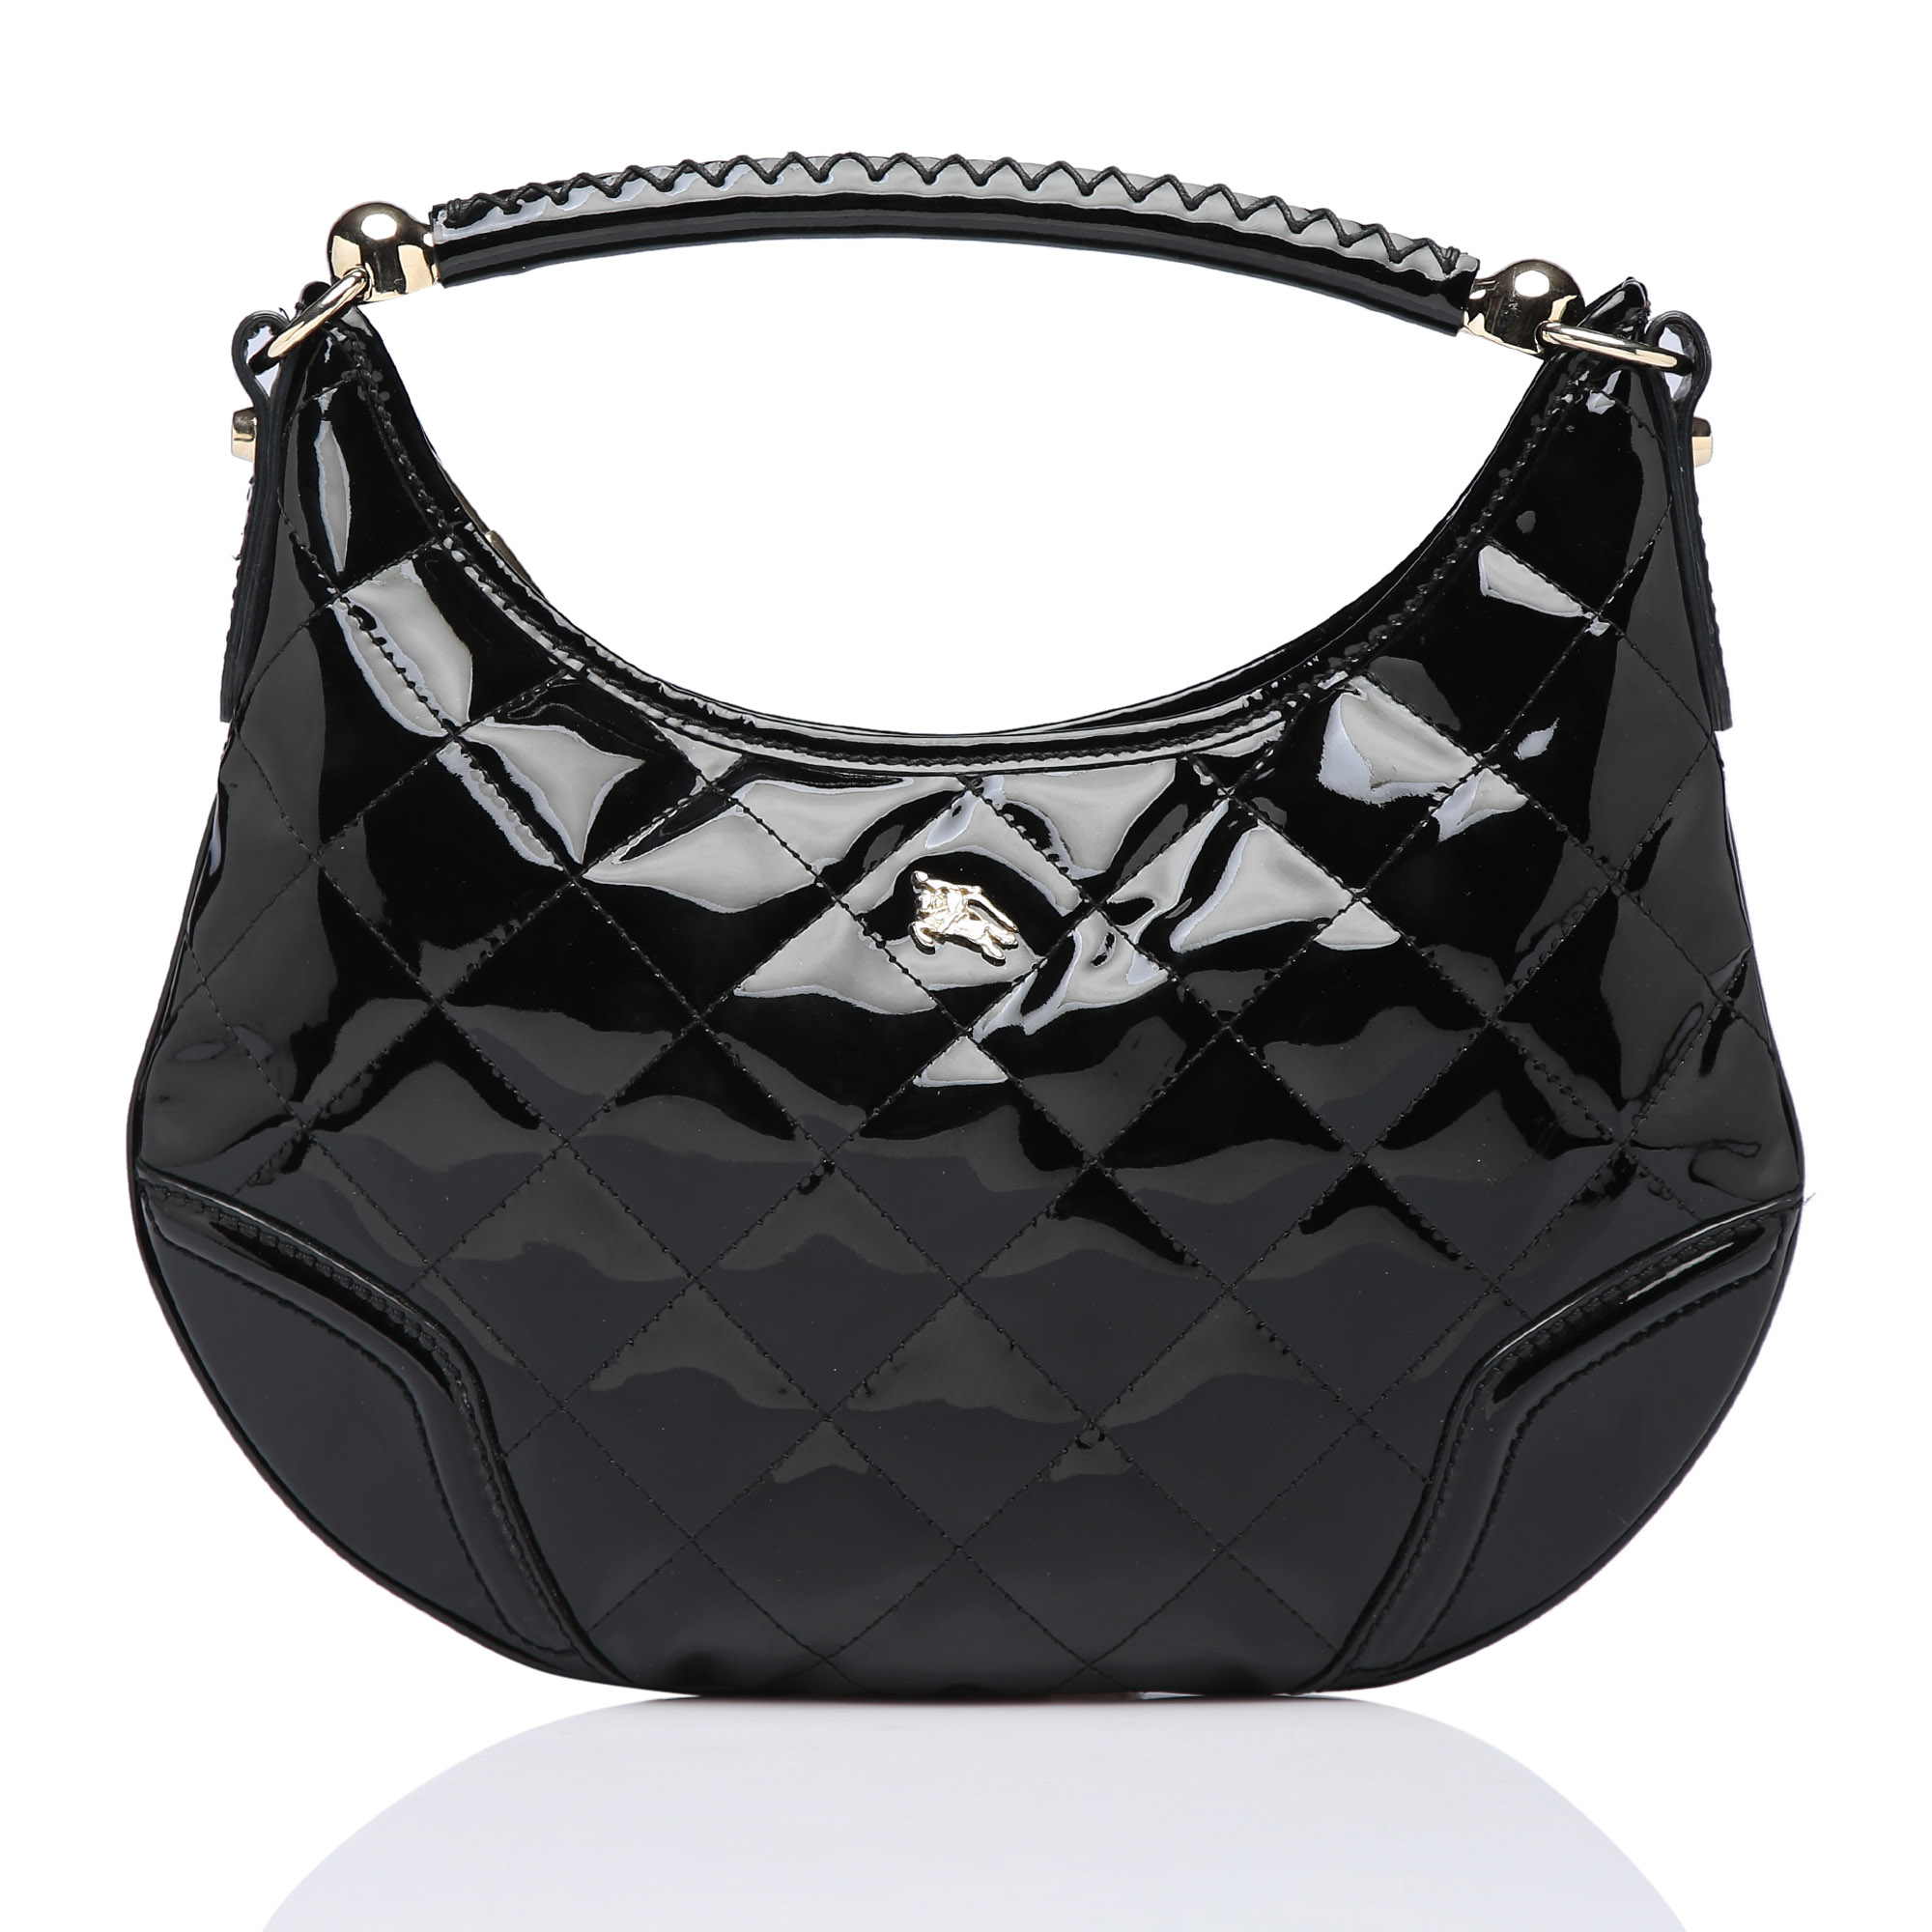 Burberry Black Patent Quilted Hoxton Hobo - My Luxury Bargain 0c1e3ce000072